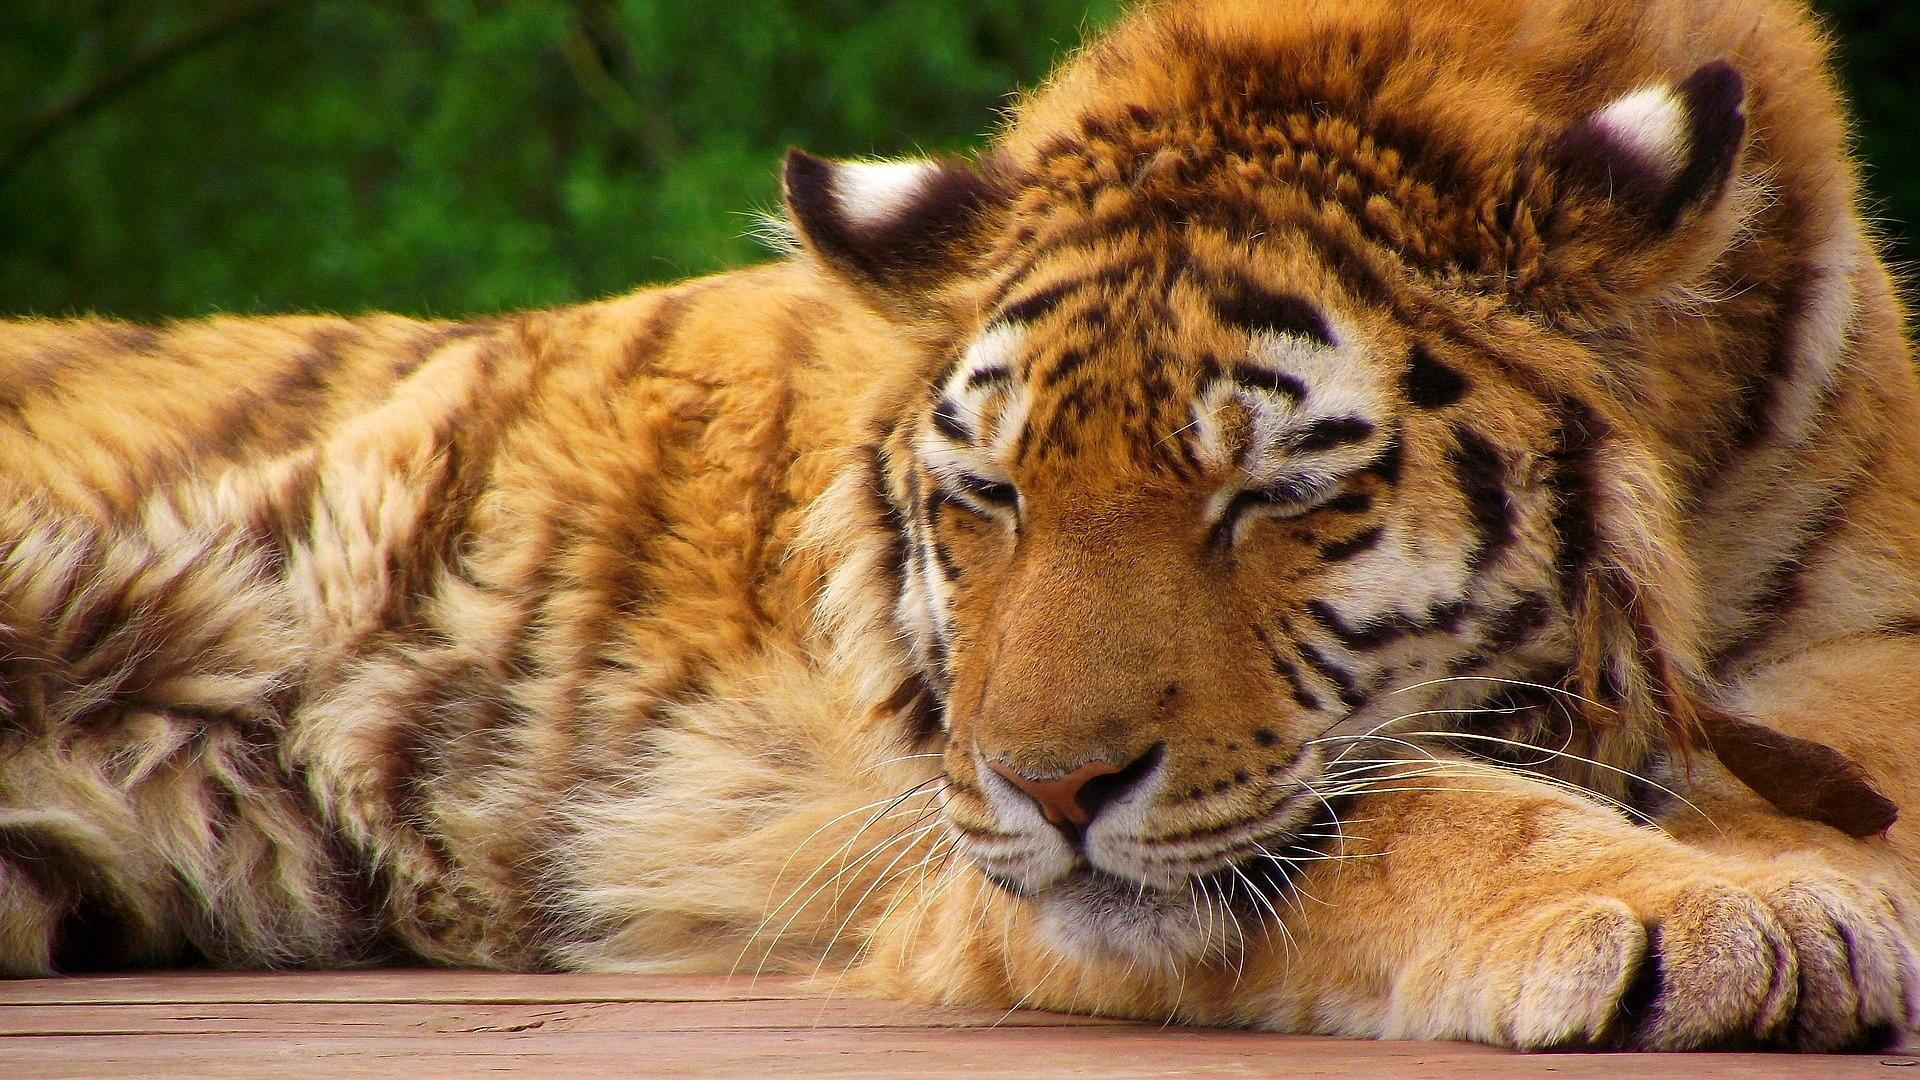 Sleeping tiger pictures wallpaper | (86819)